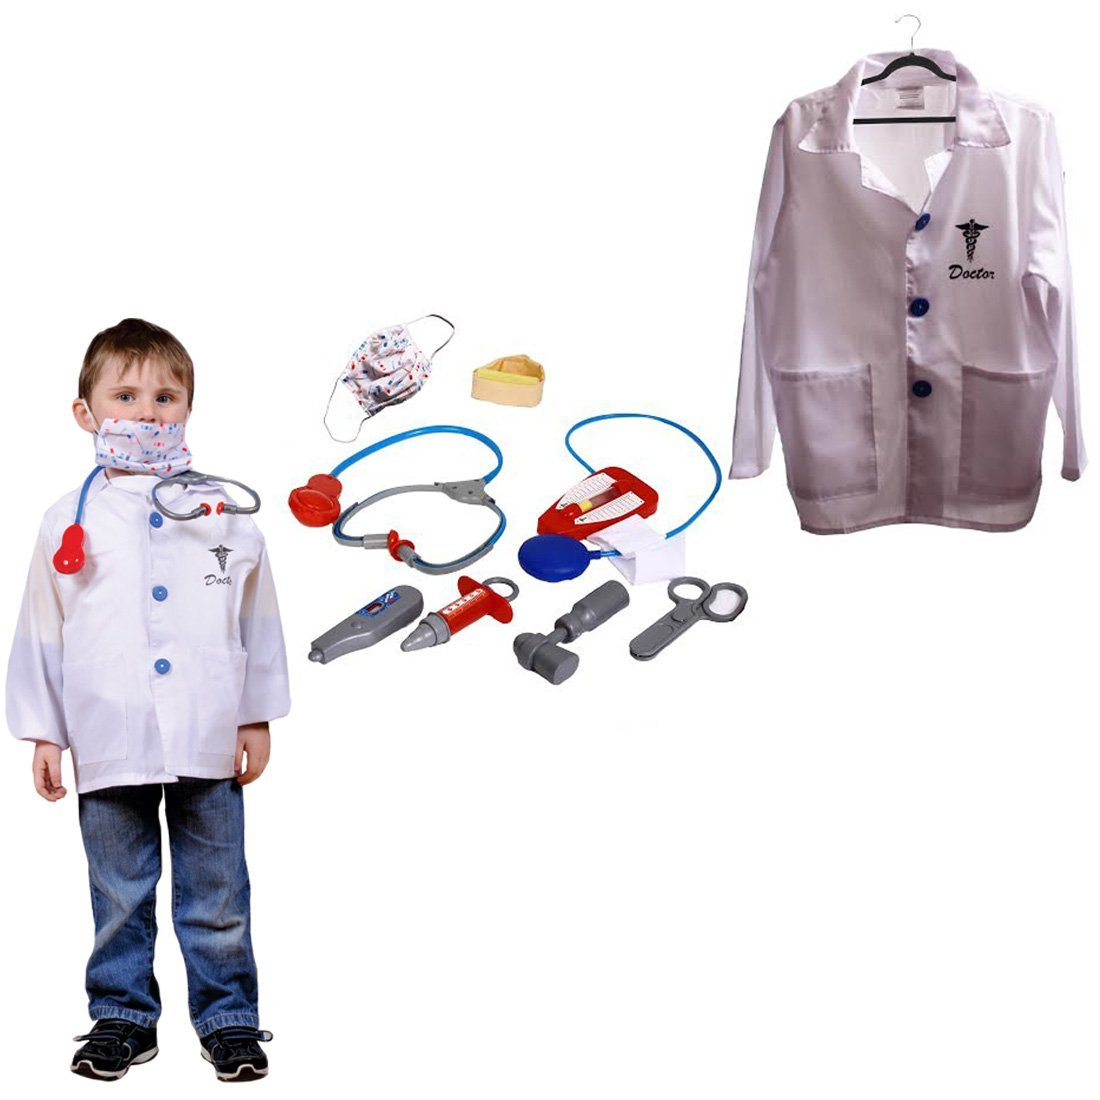 Dazzling Toys Christmas Costume Kids Pretend Play Doctor Costume Set with Accessories